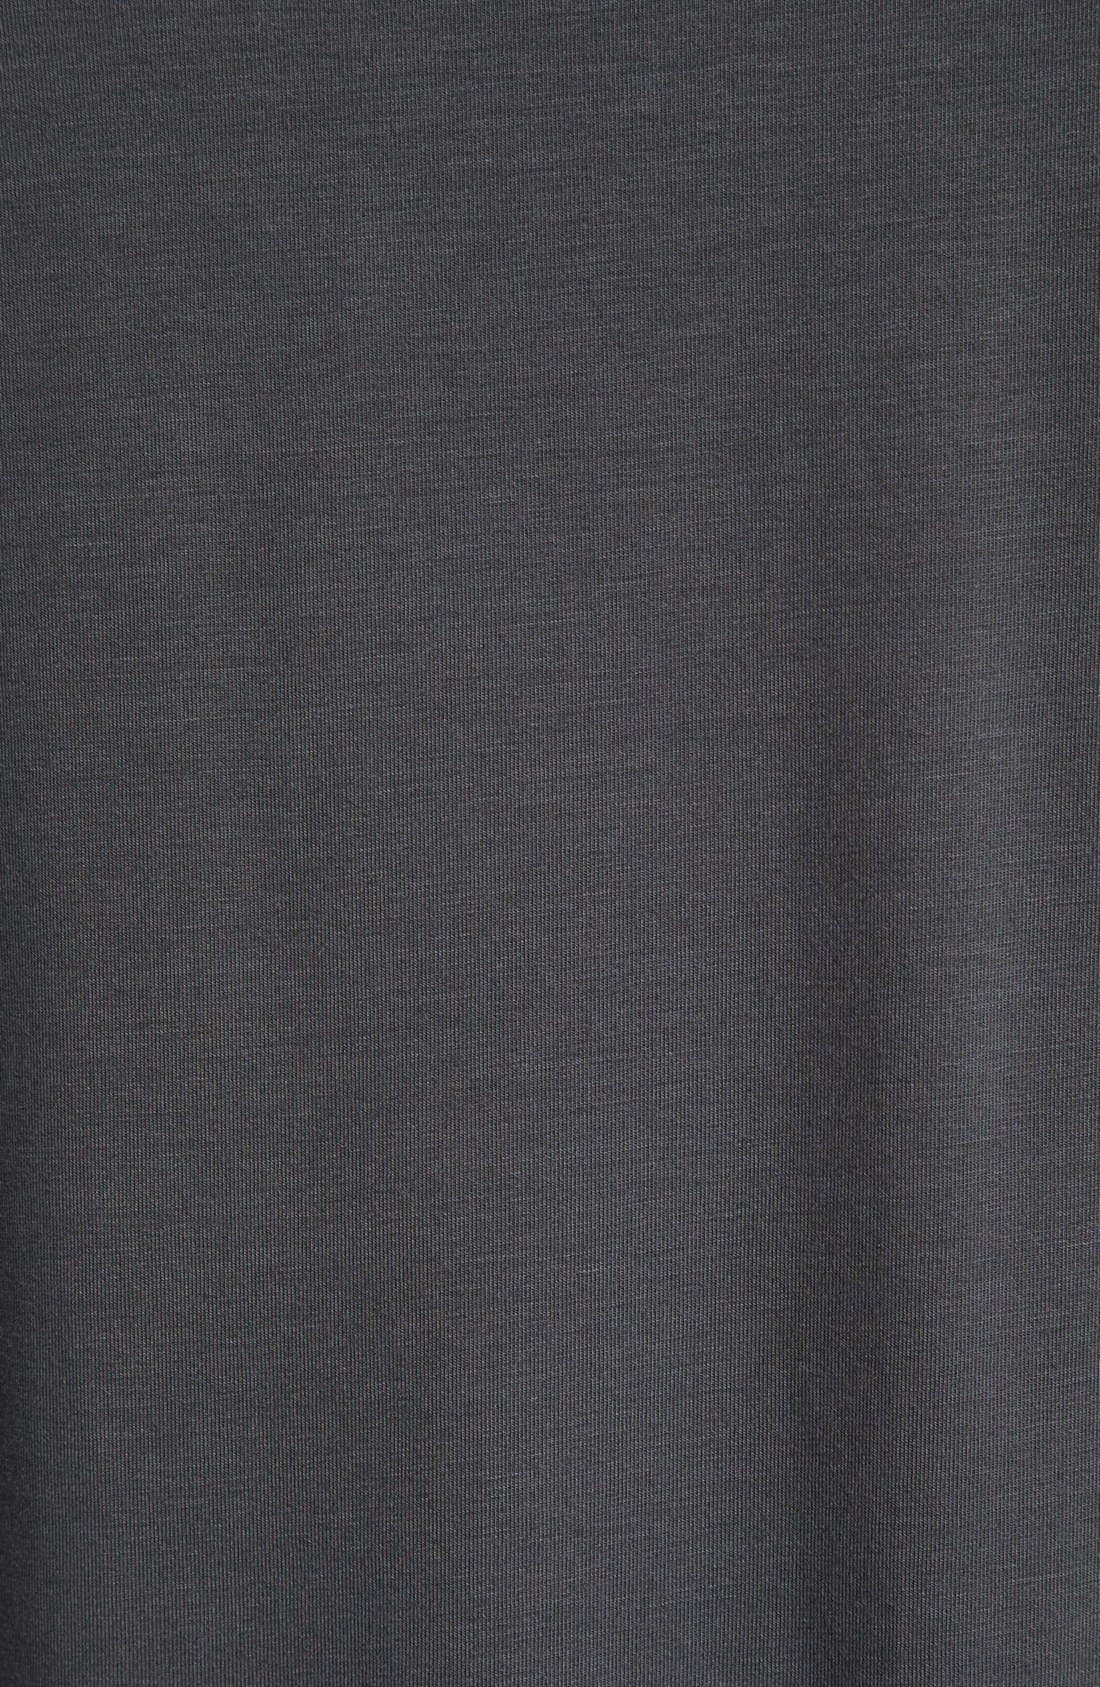 Alternate Image 3  - BOSS HUGO BOSS 'Innovation 2' Short Sleeve T-Shirt